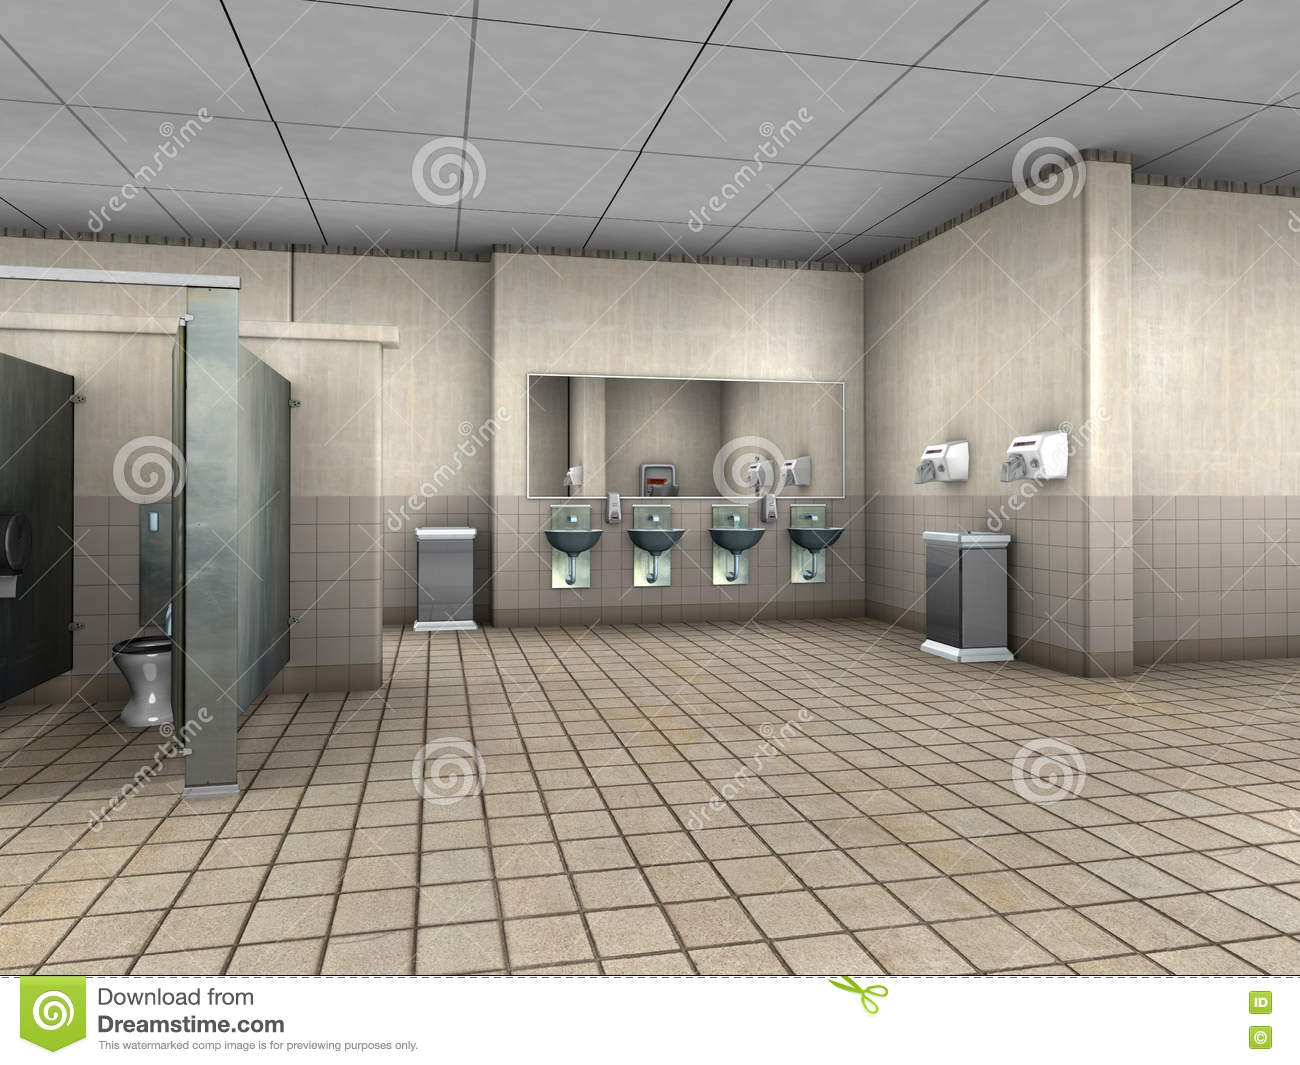 Public Bathroom Restroom Illustration Stock Photography